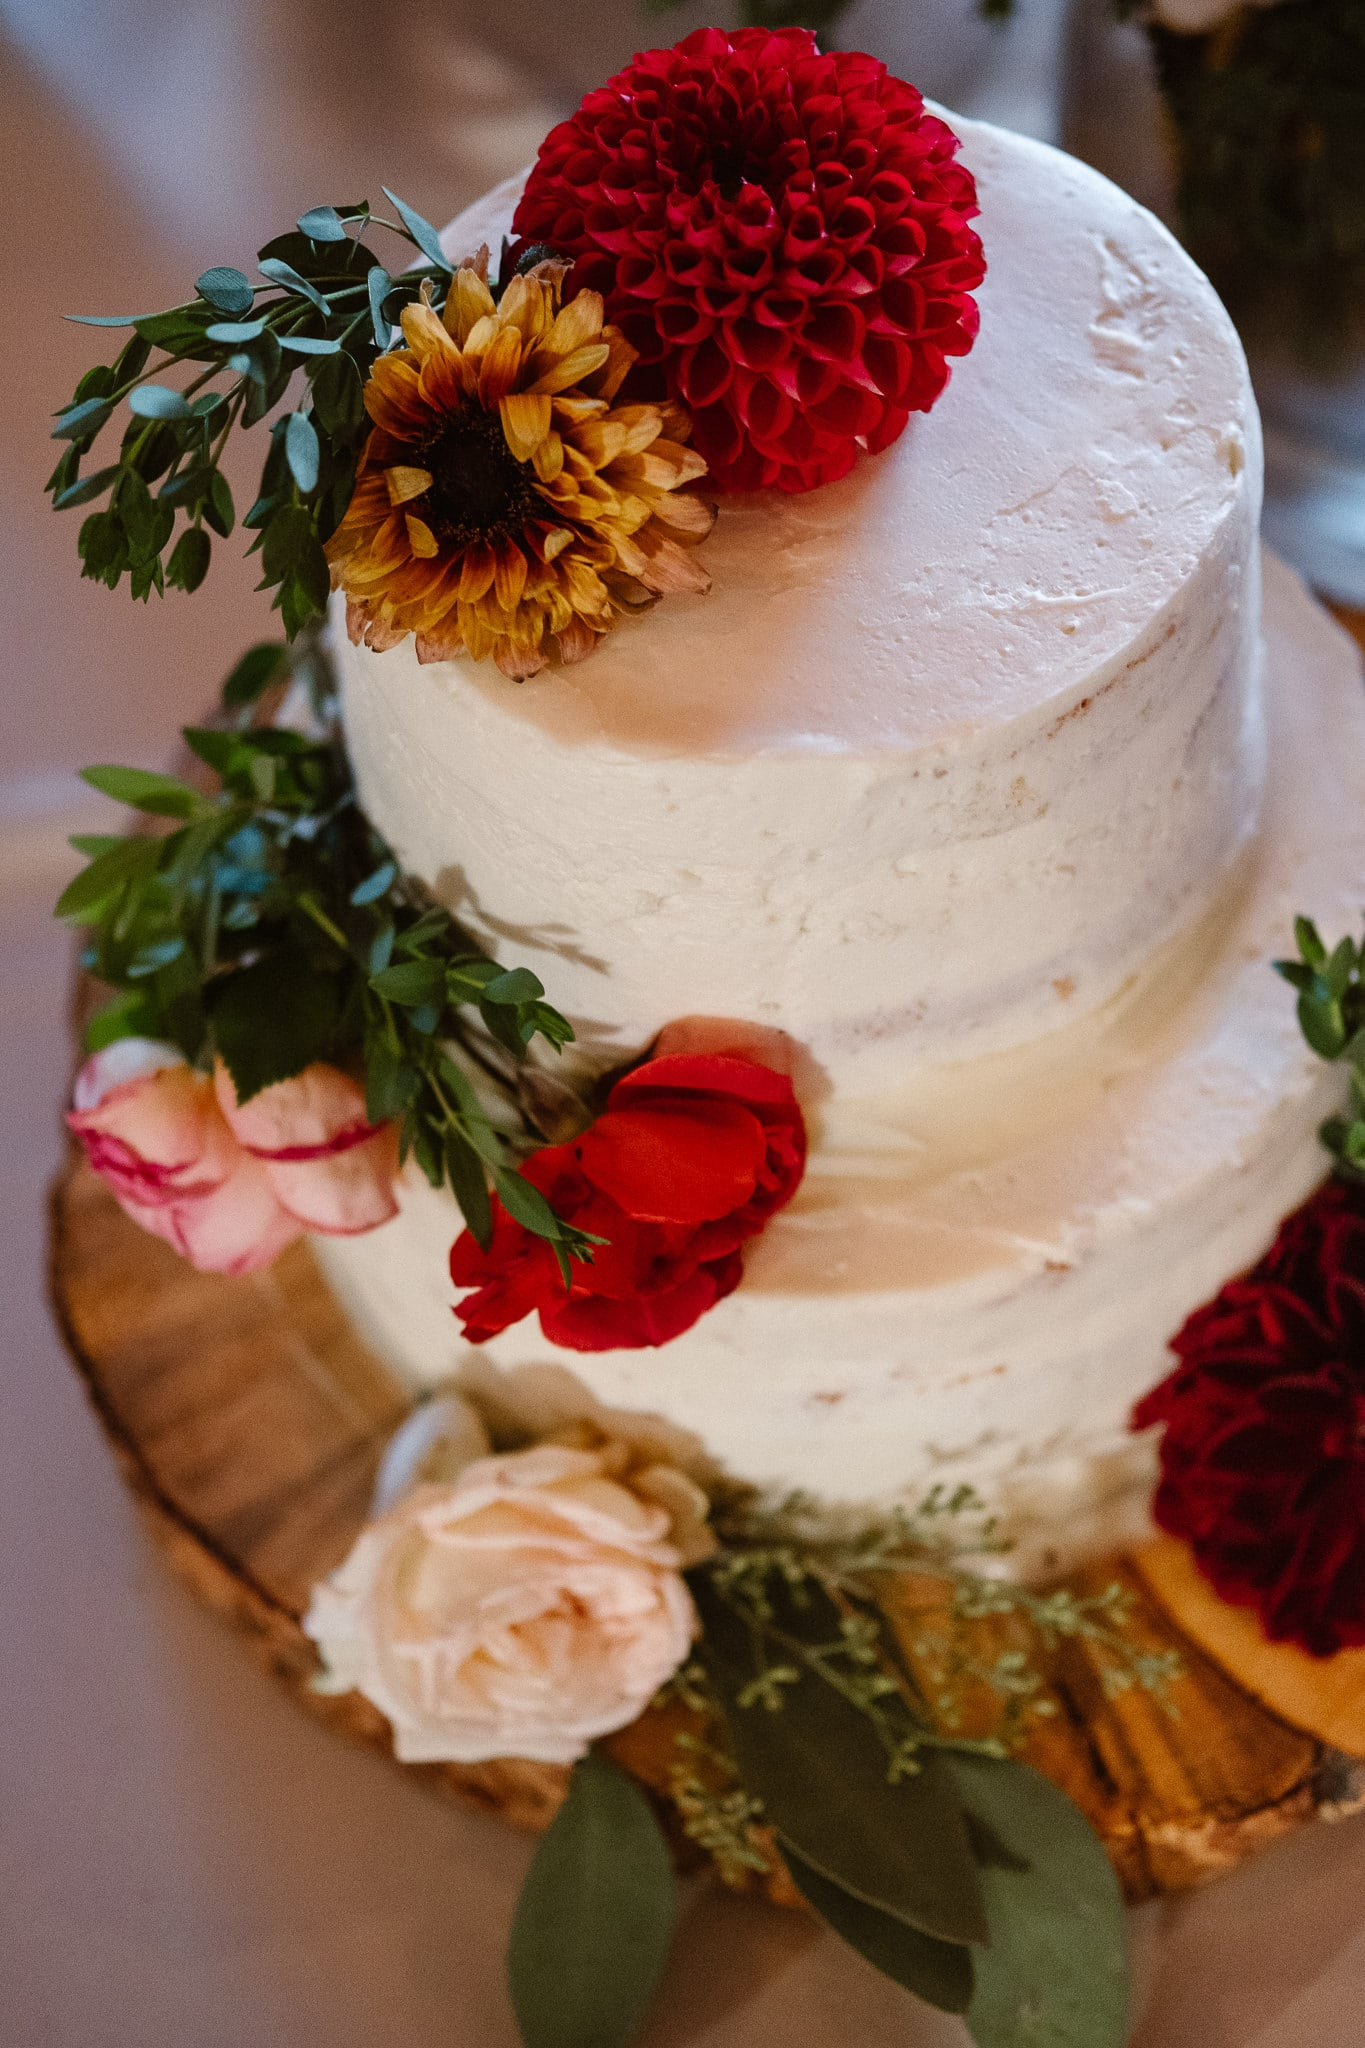 Steamboat Springs wedding photographer, La Joya Dulce wedding, Colorado ranch wedding venues, white wedding cake with flowers